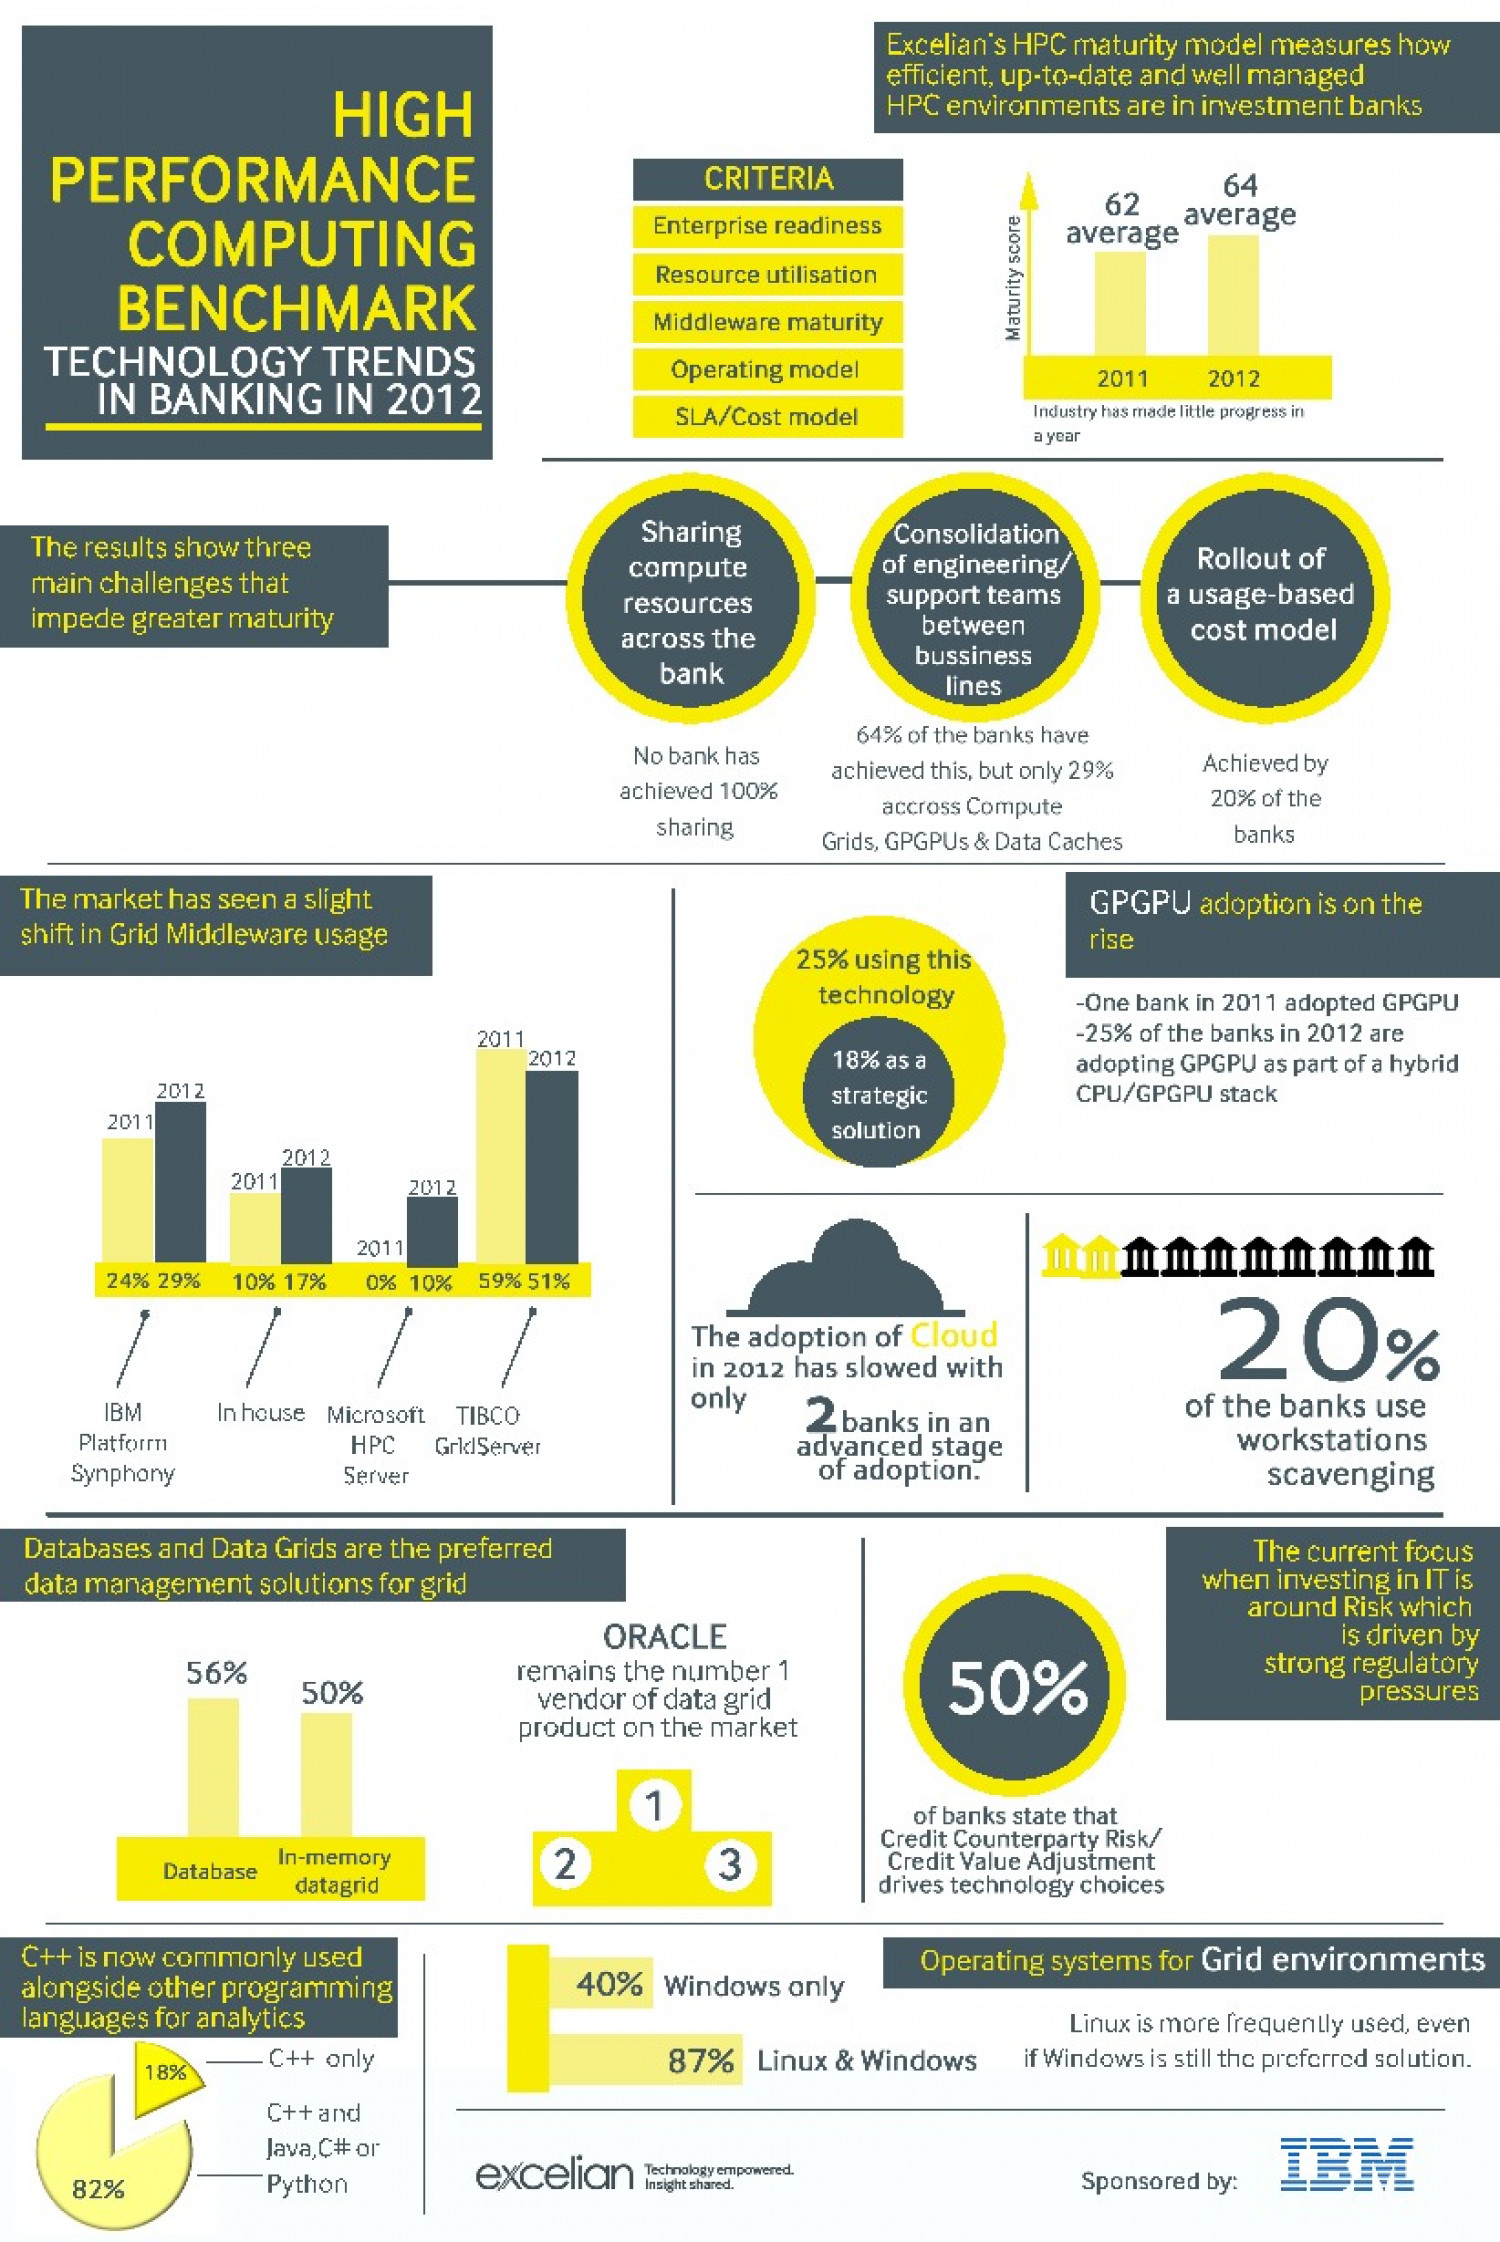 High Performance Computing Benchmark 2012 Infographic